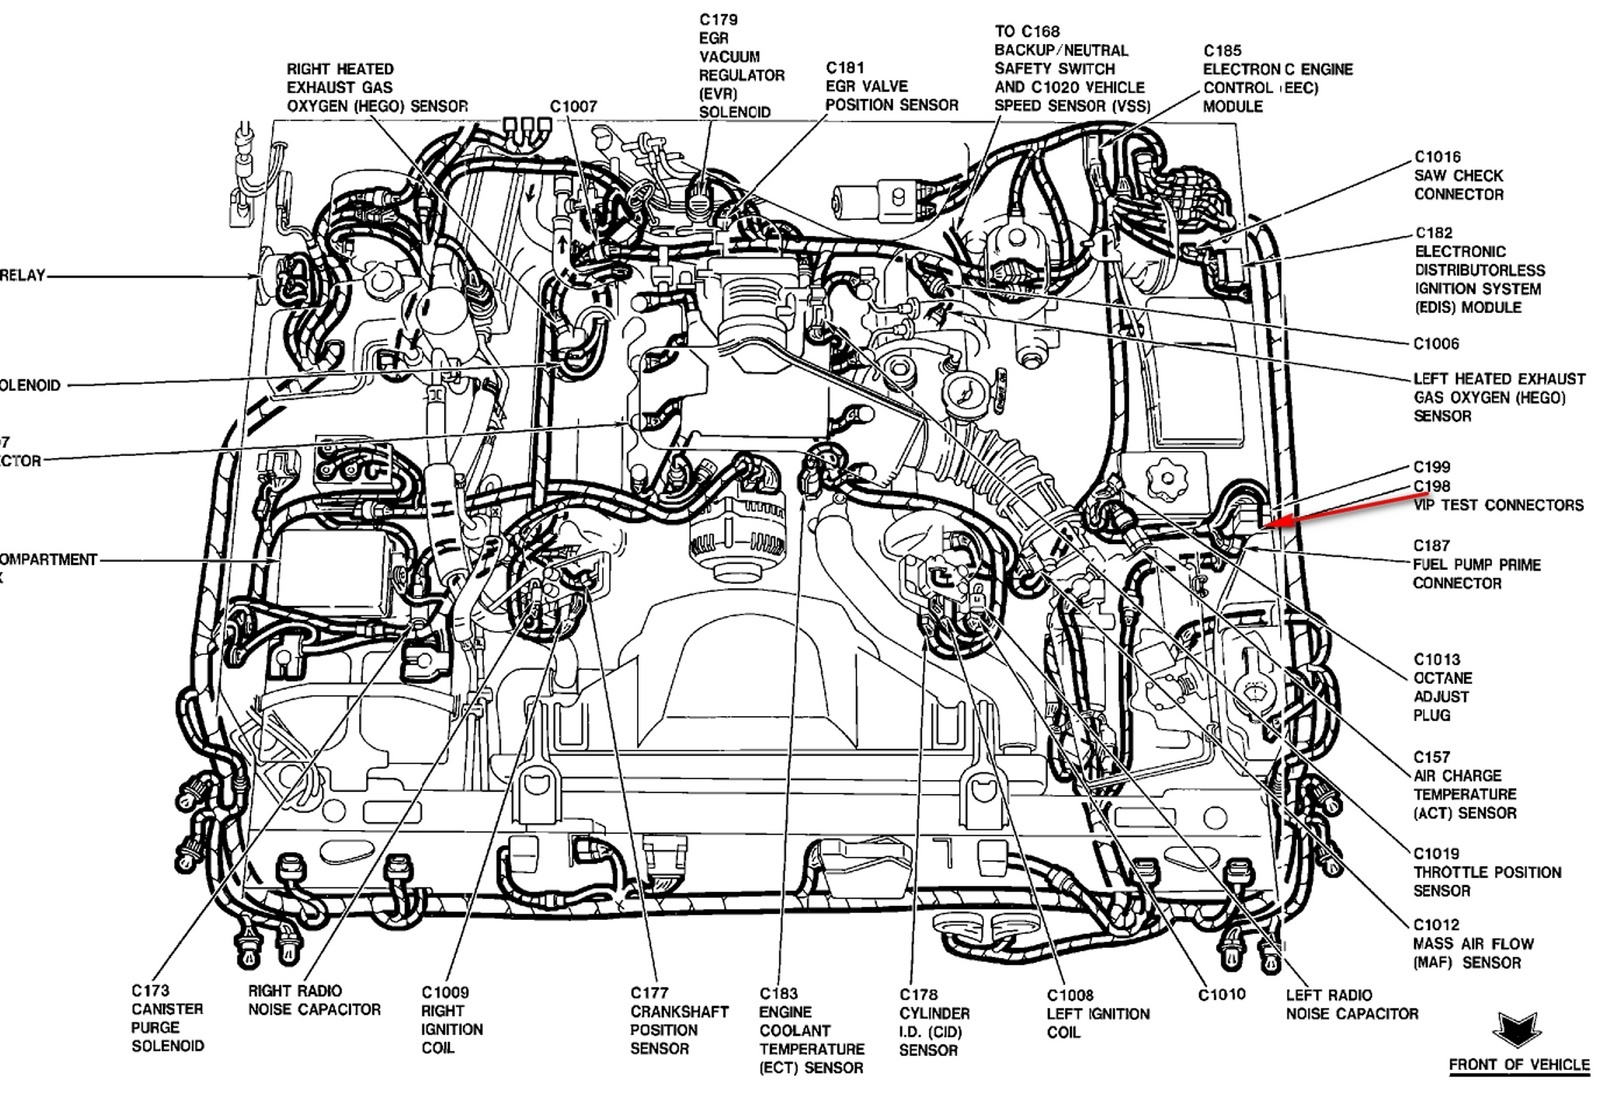 2001 Grand Marquis Wiring Diagram : 33 Wiring Diagram